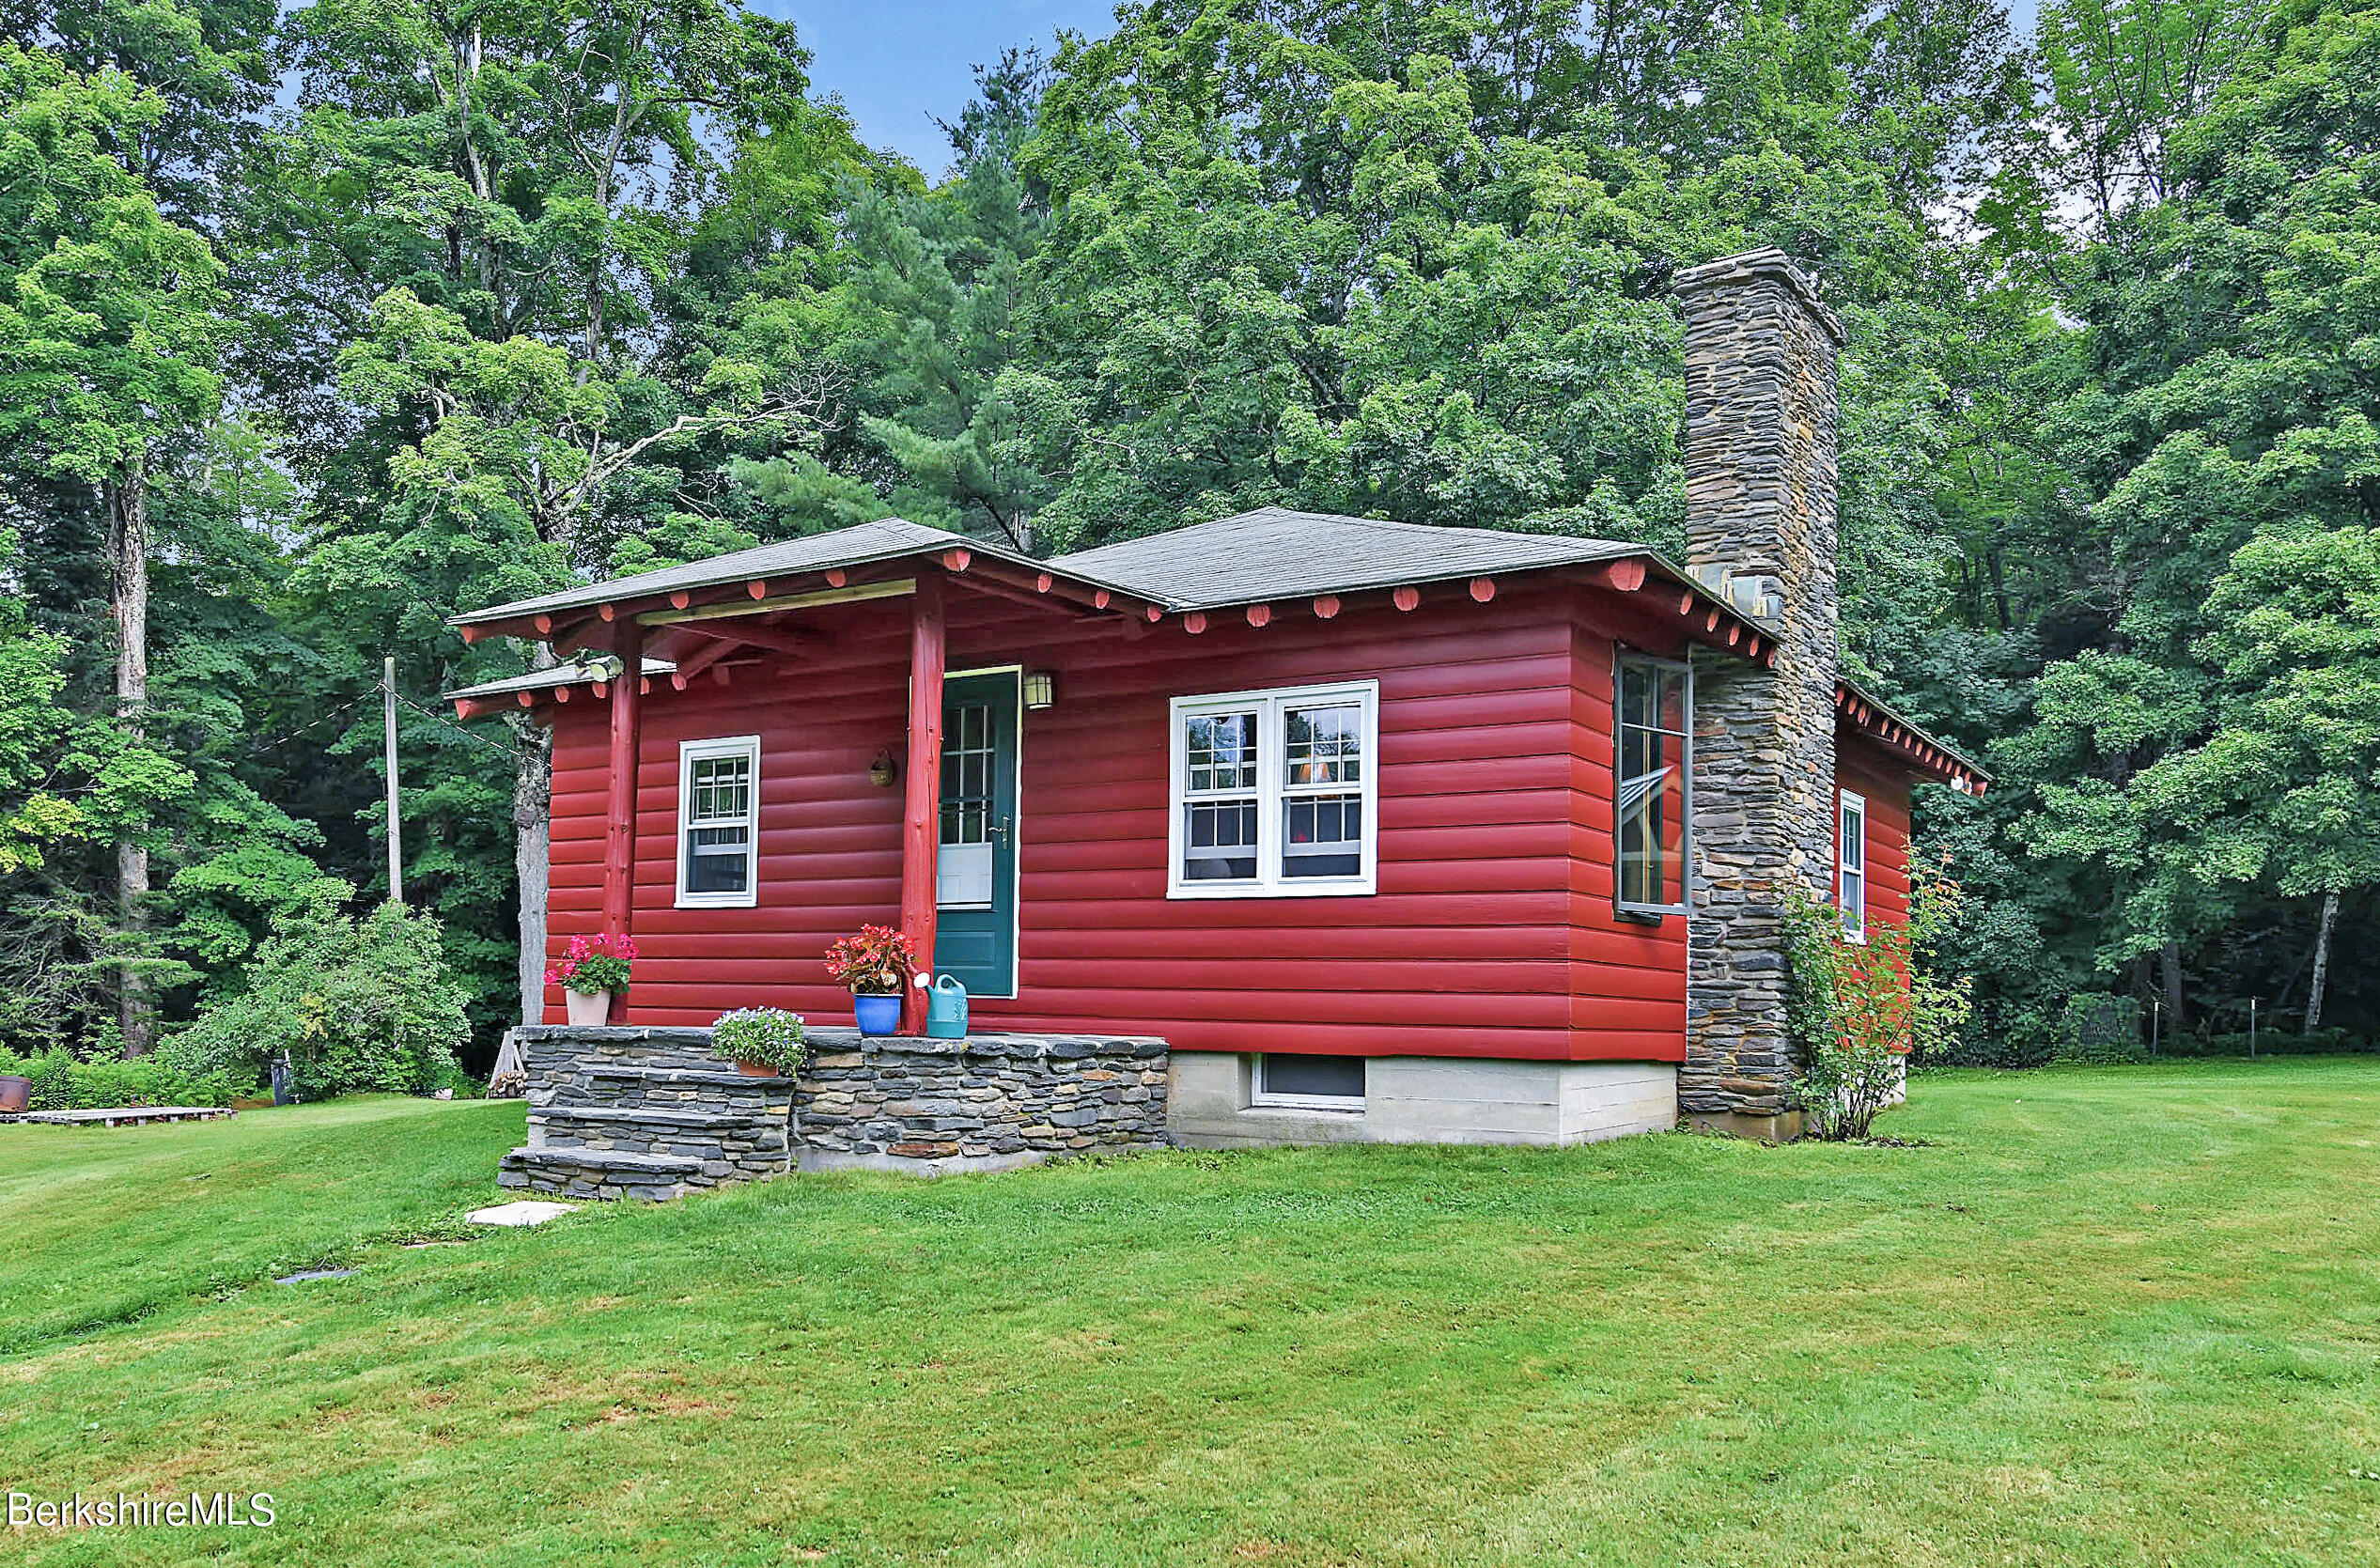 202 Center, Savoy, Massachusetts 01256, 2 Bedrooms Bedrooms, 5 Rooms Rooms,1 BathroomBathrooms,Residential,For Sale,Center,235245